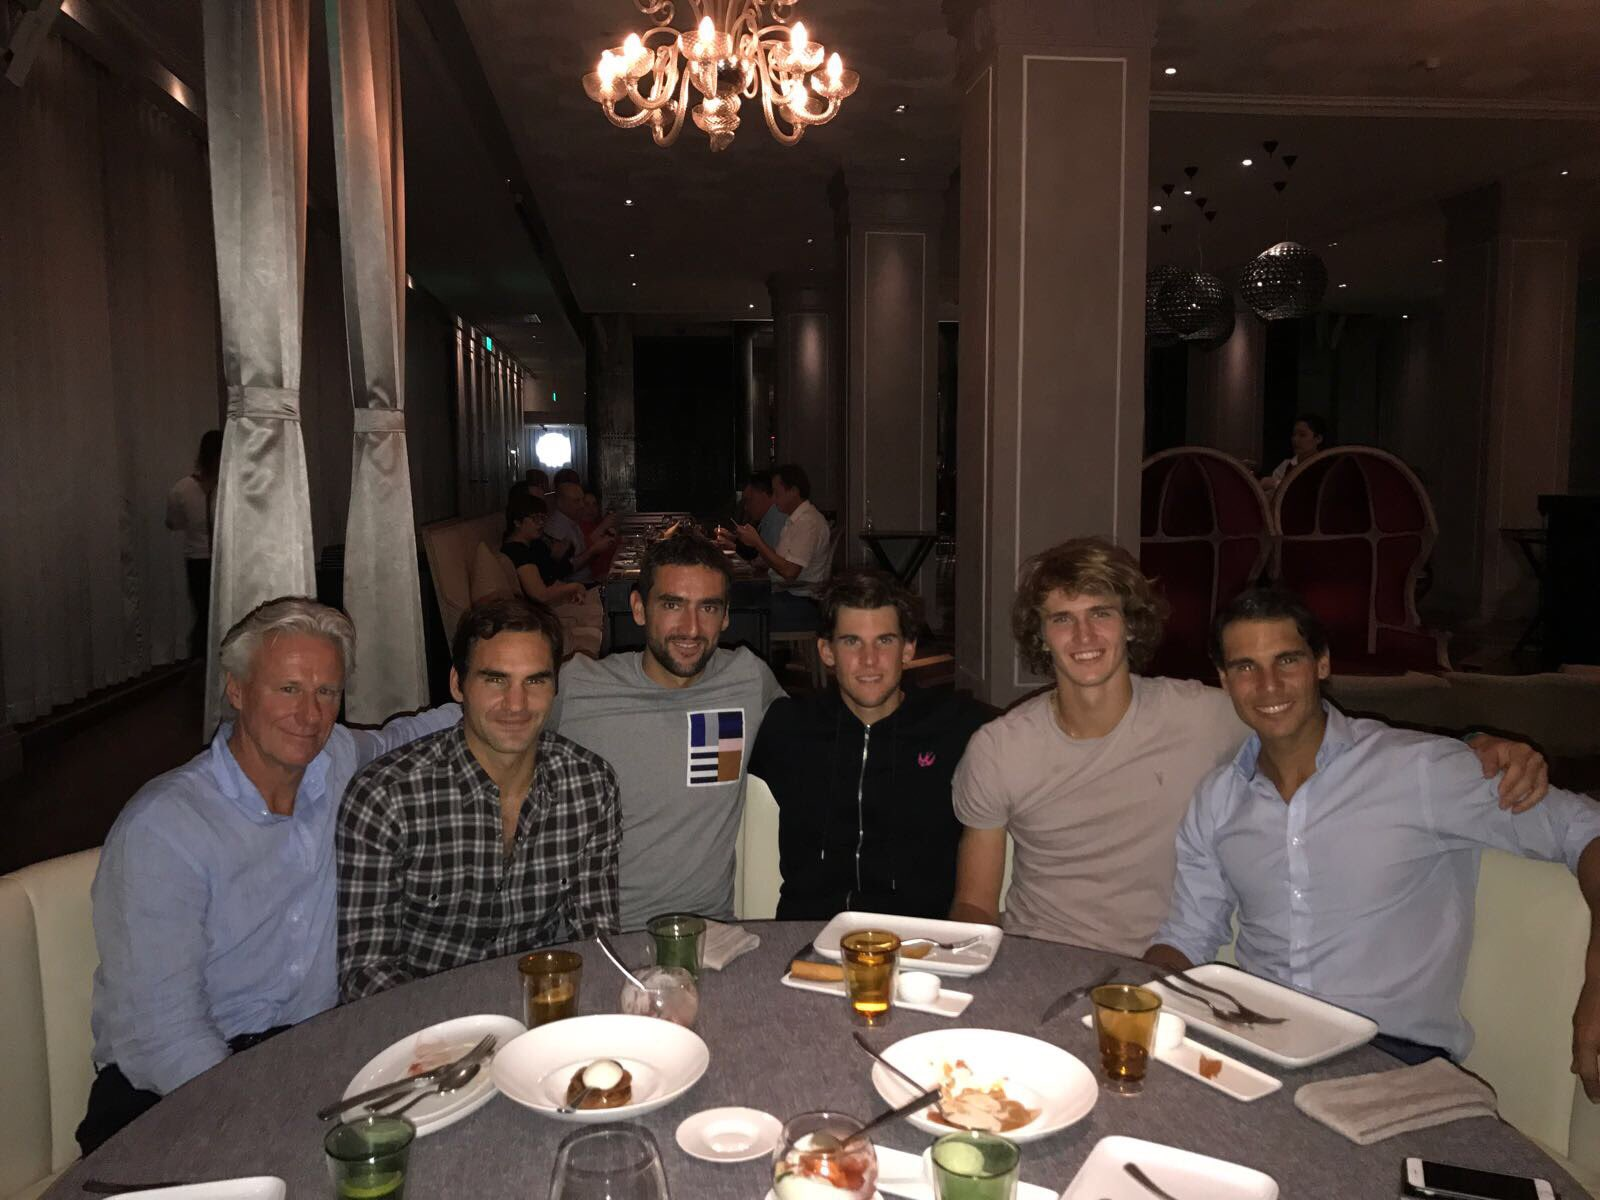 We all missed @LaverCup so much that we had to have a reunion in Shanghai ���� ...@tomasberdych we saved you a seat! https://t.co/lnt2ixCDBi